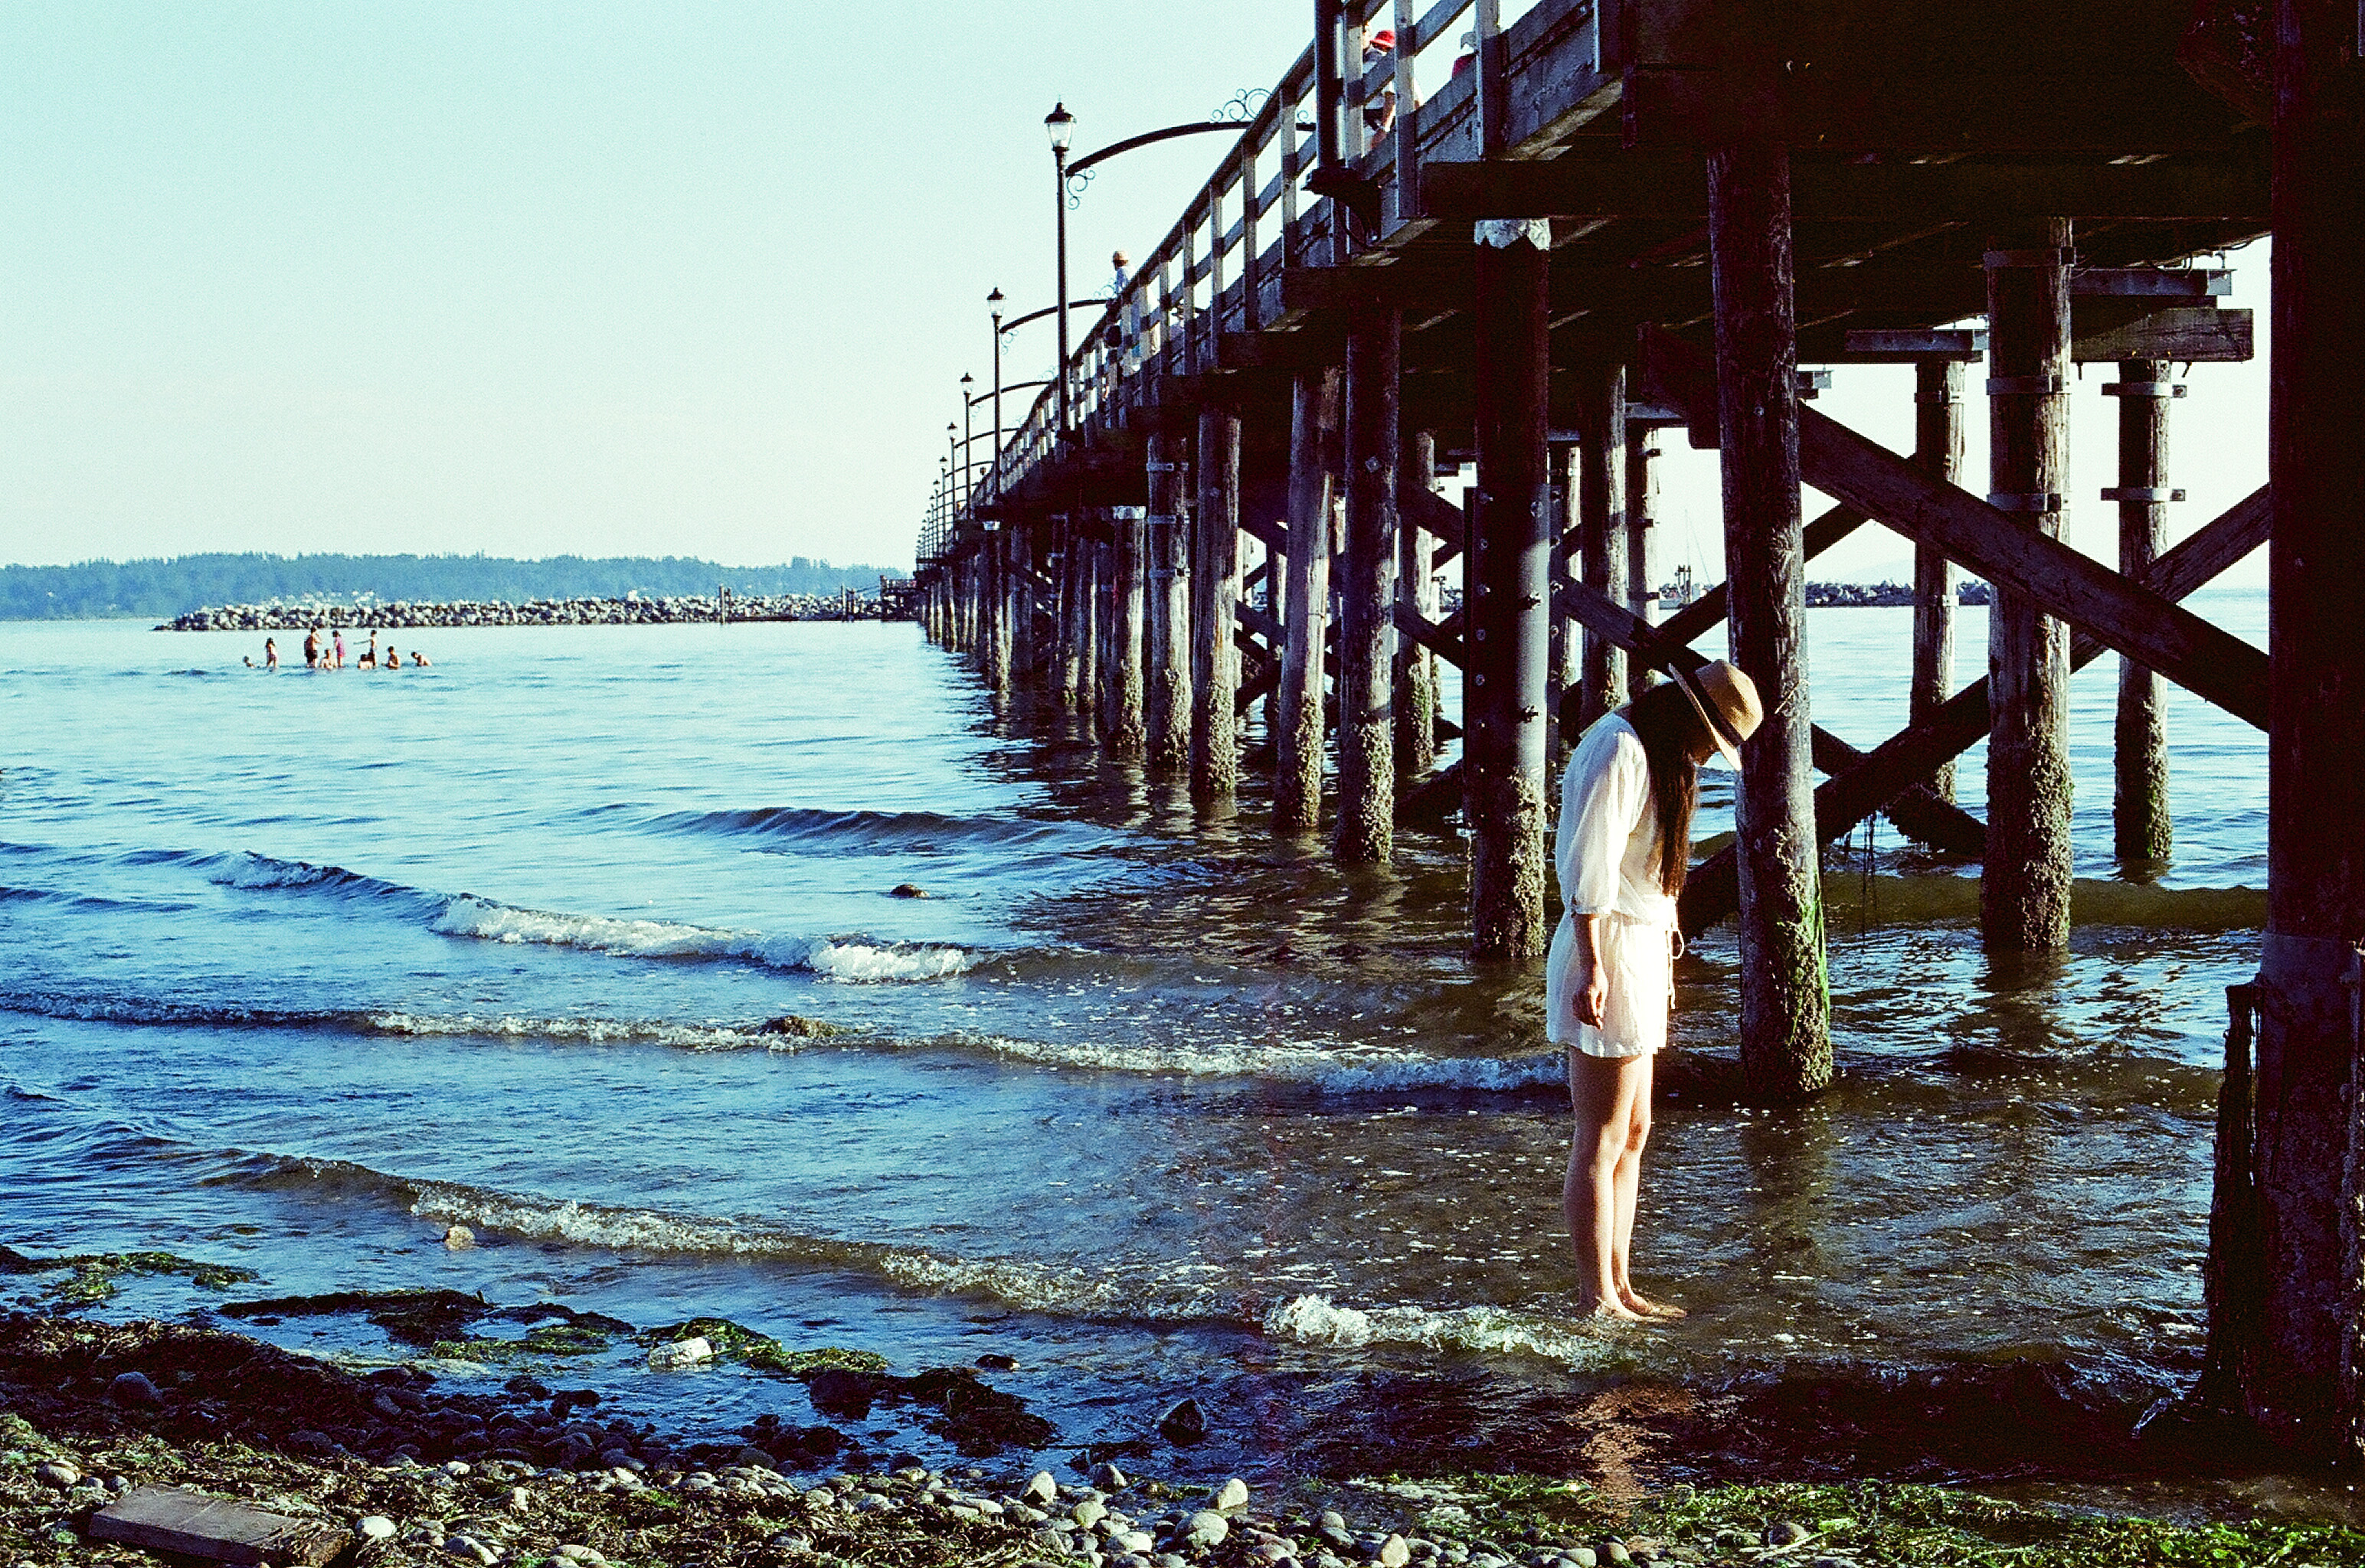 Standing in the Water under the Pier, water, sea, pier, outdoor, HQ Photo